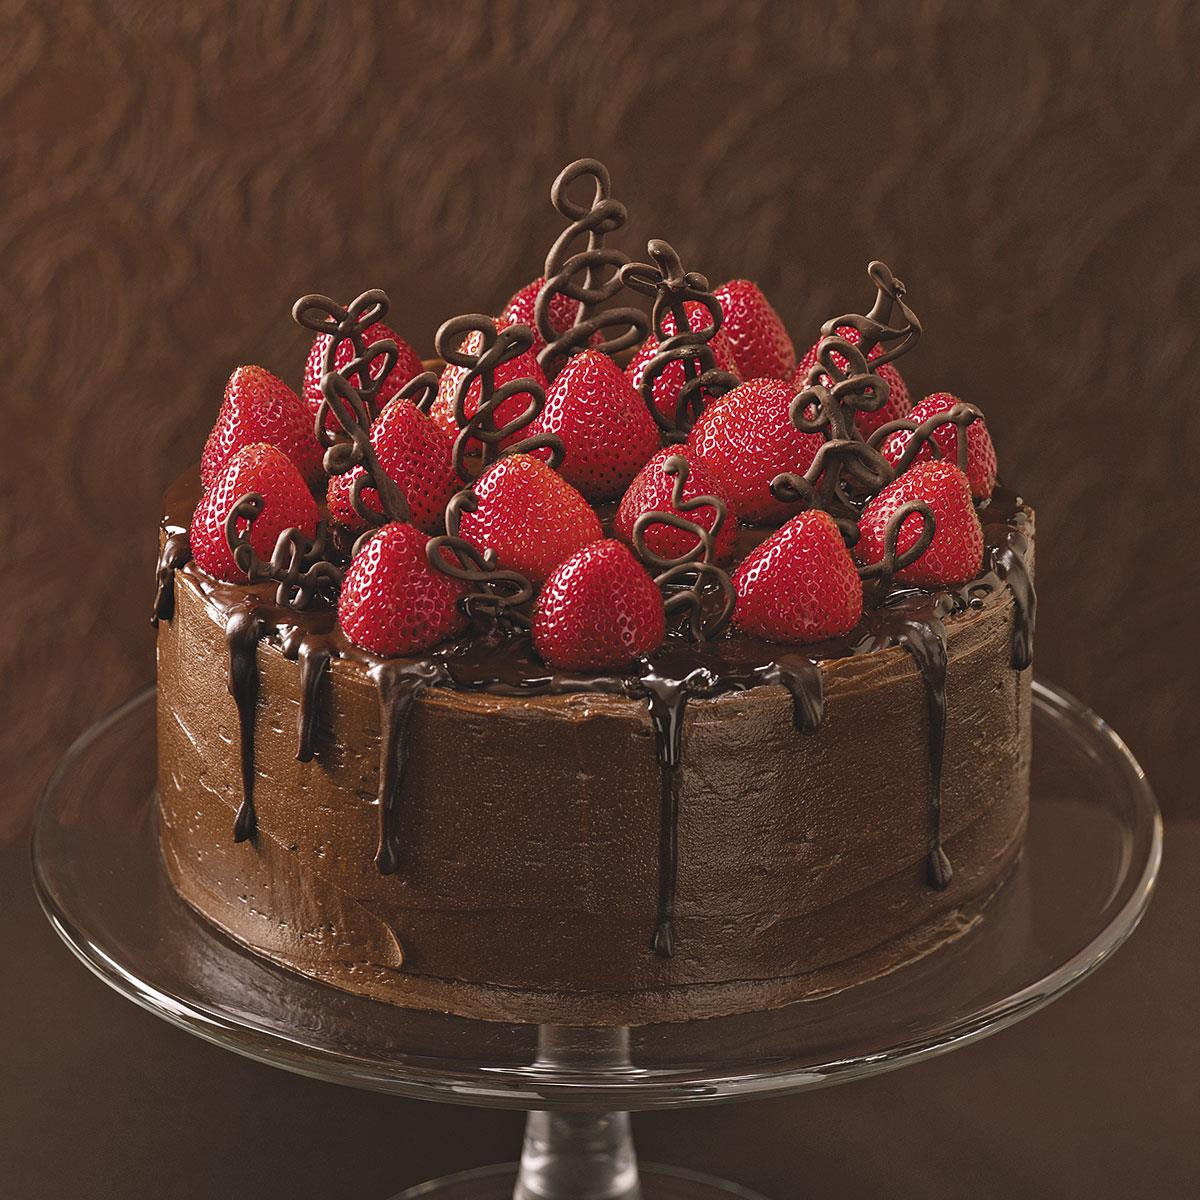 Chocolate Fudge Cake With Strawberries